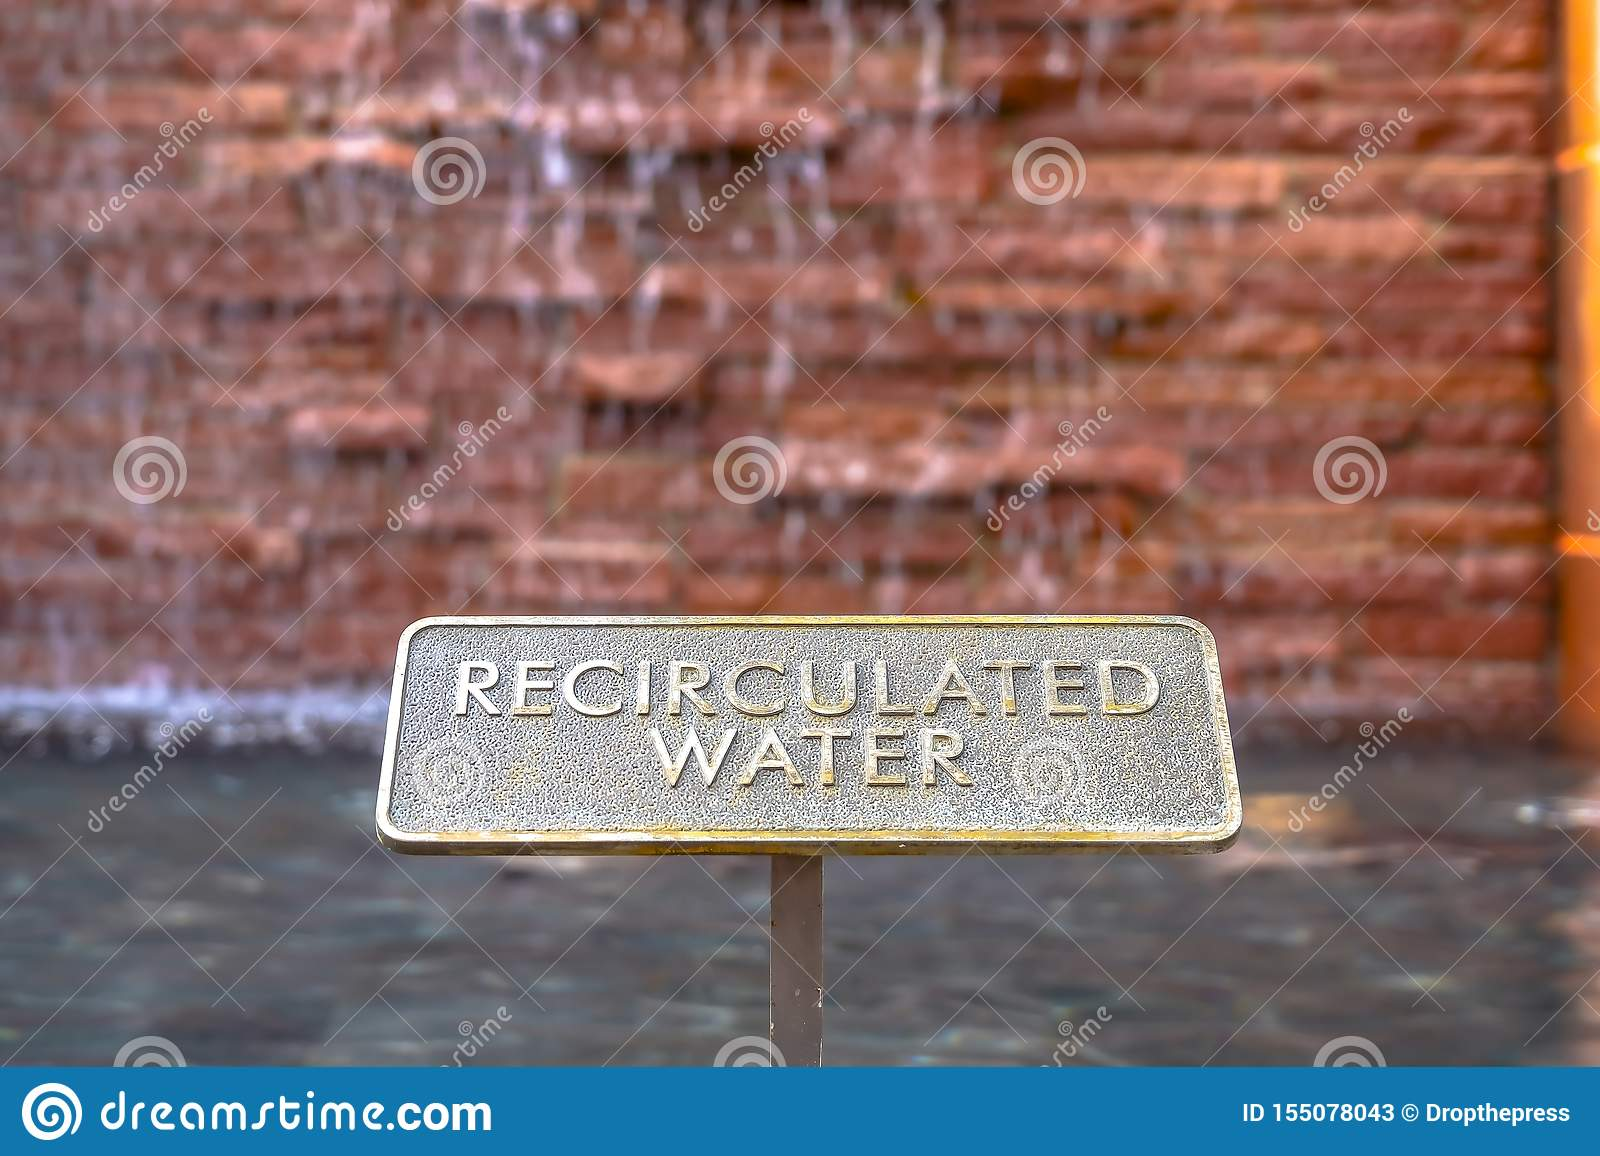 Close up of metal plate with words Recirculated Water embossed on surface